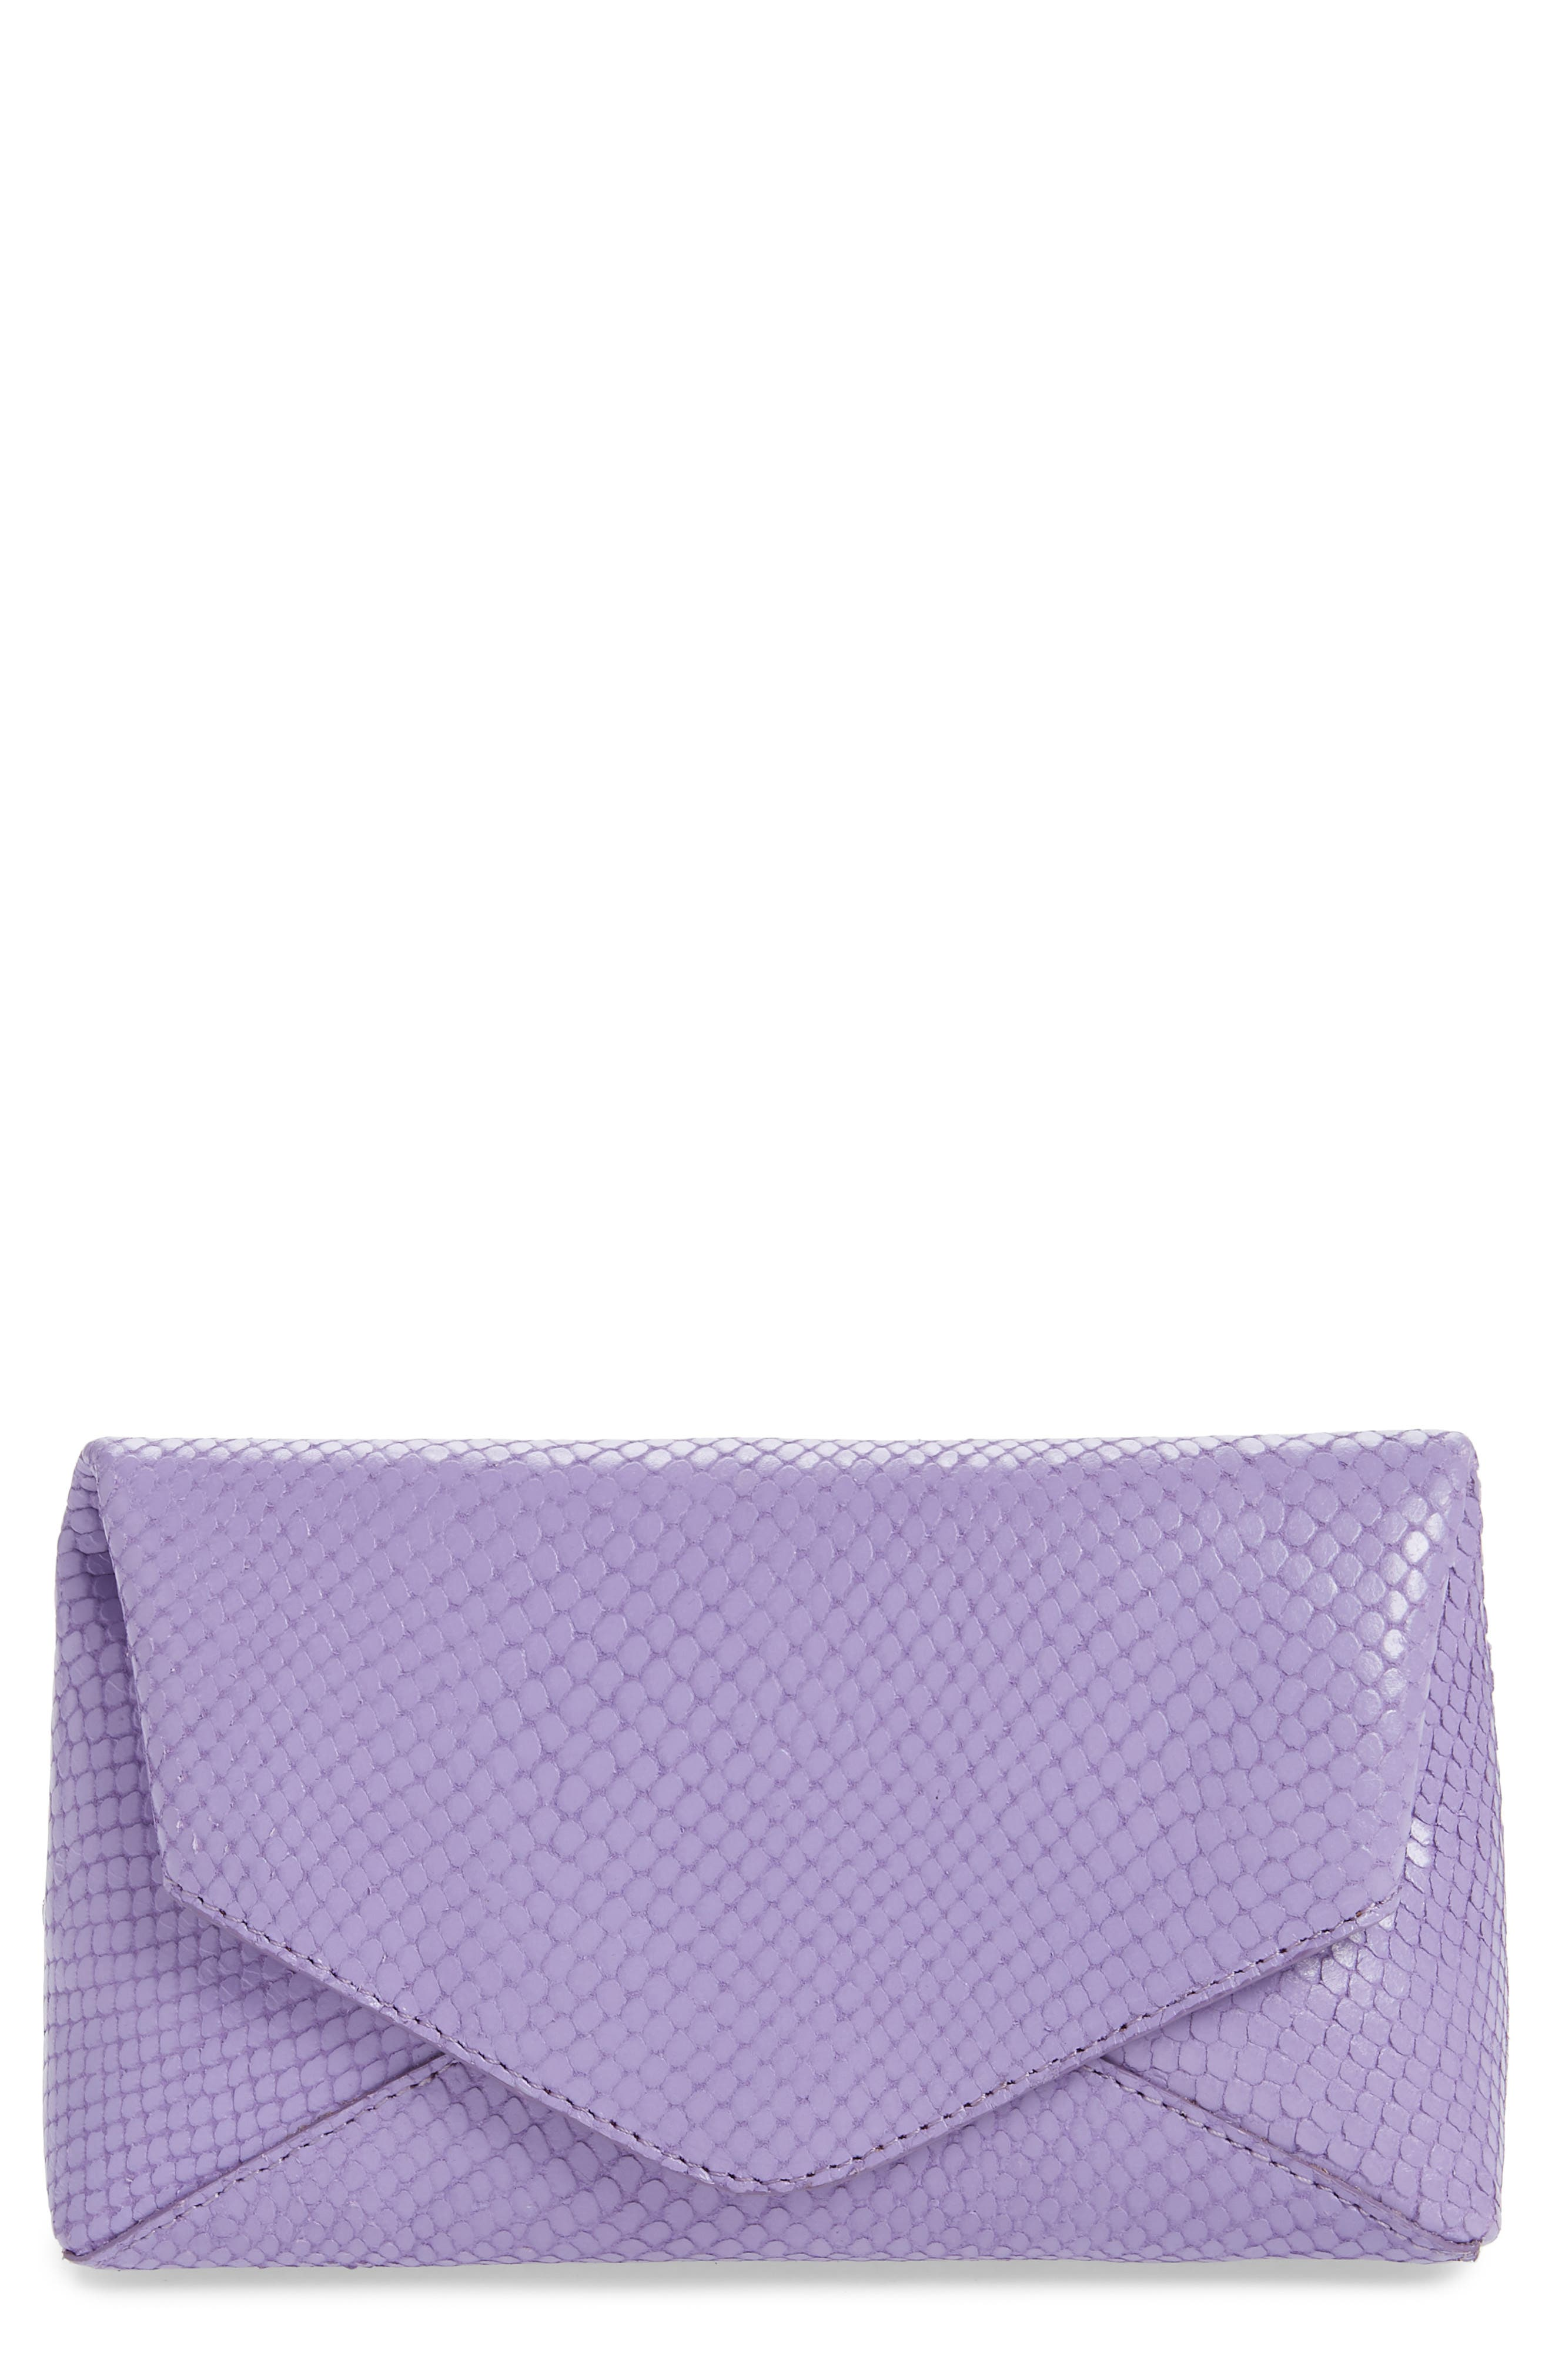 DRIES VAN NOTEN Small Python Embossed Leather Envelope Clutch, Main, color, LILAC